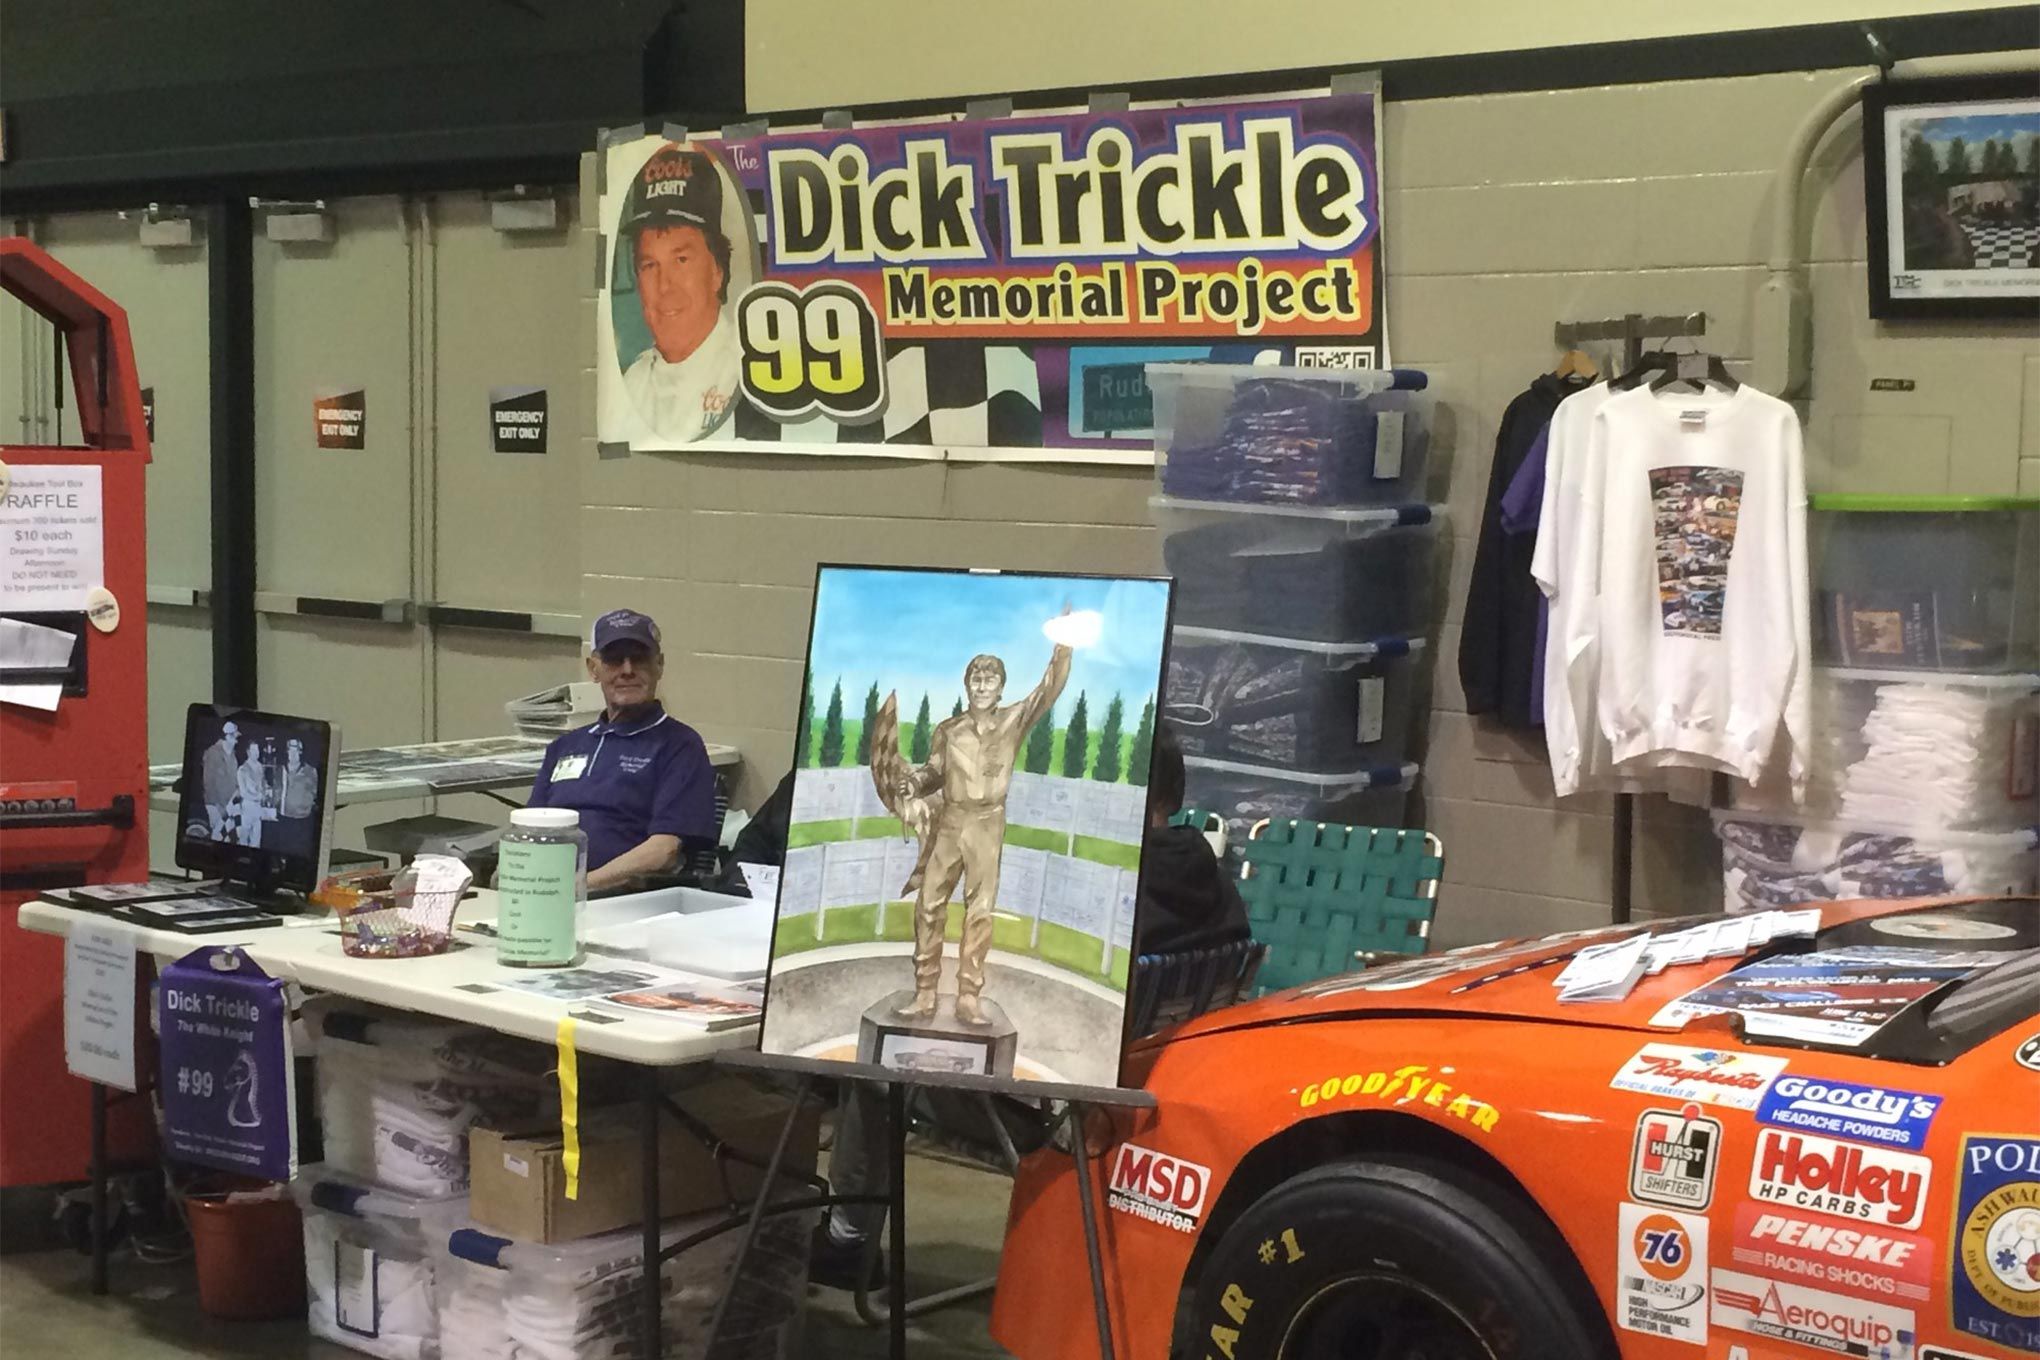 The Dick Trickle Memorial Foundation was at the show promoting their cause.  They have been raising funds for two years and hope to begin and complete construction on the Memorial in Trickle's hometown of Rudolph, WI this summer.